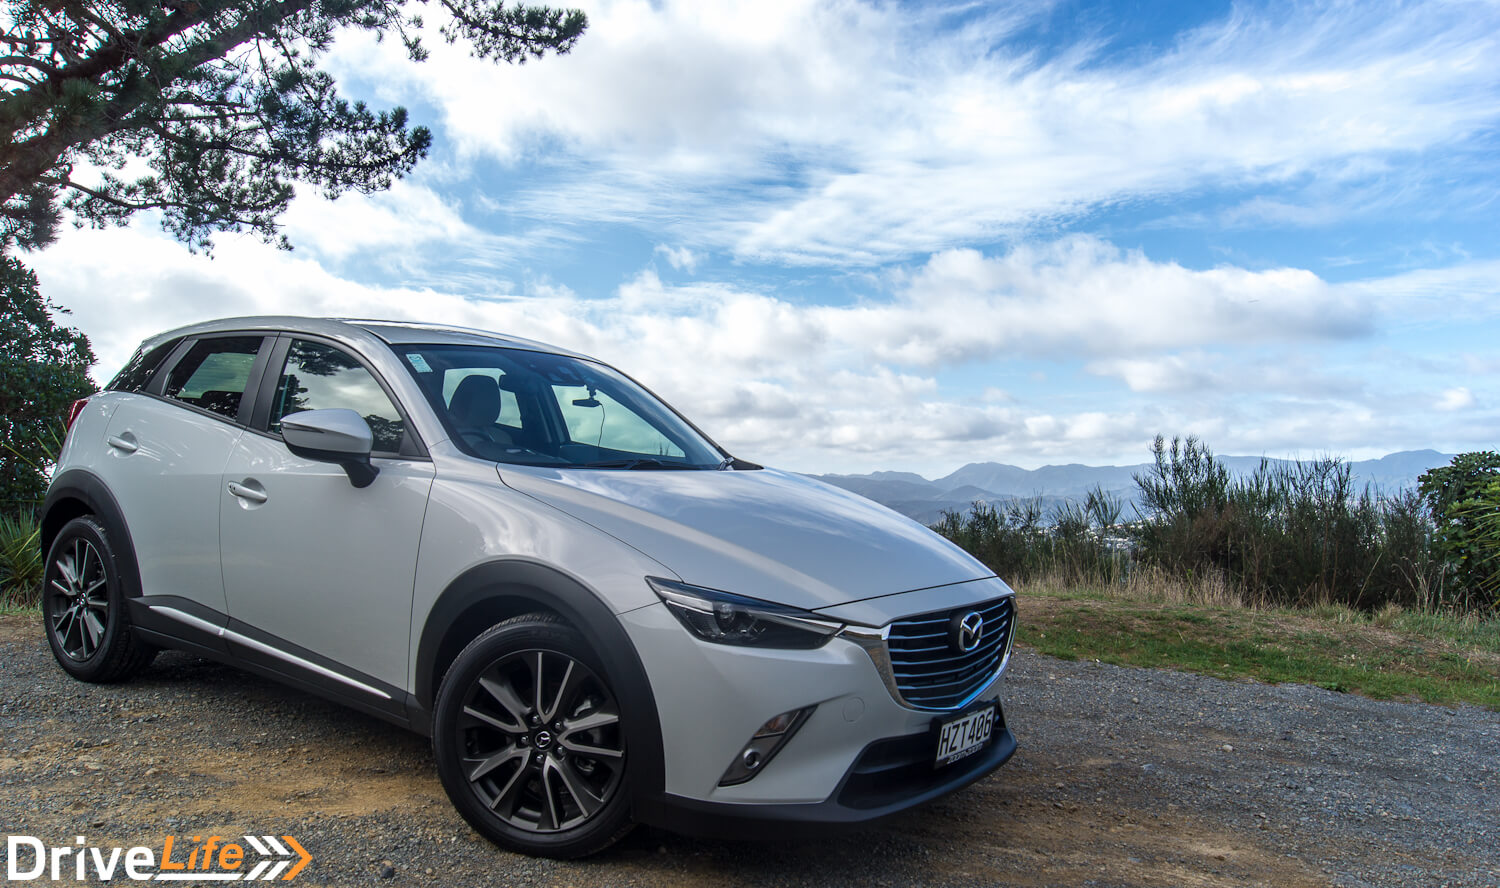 car-review-2016-mazda-cx-3-14